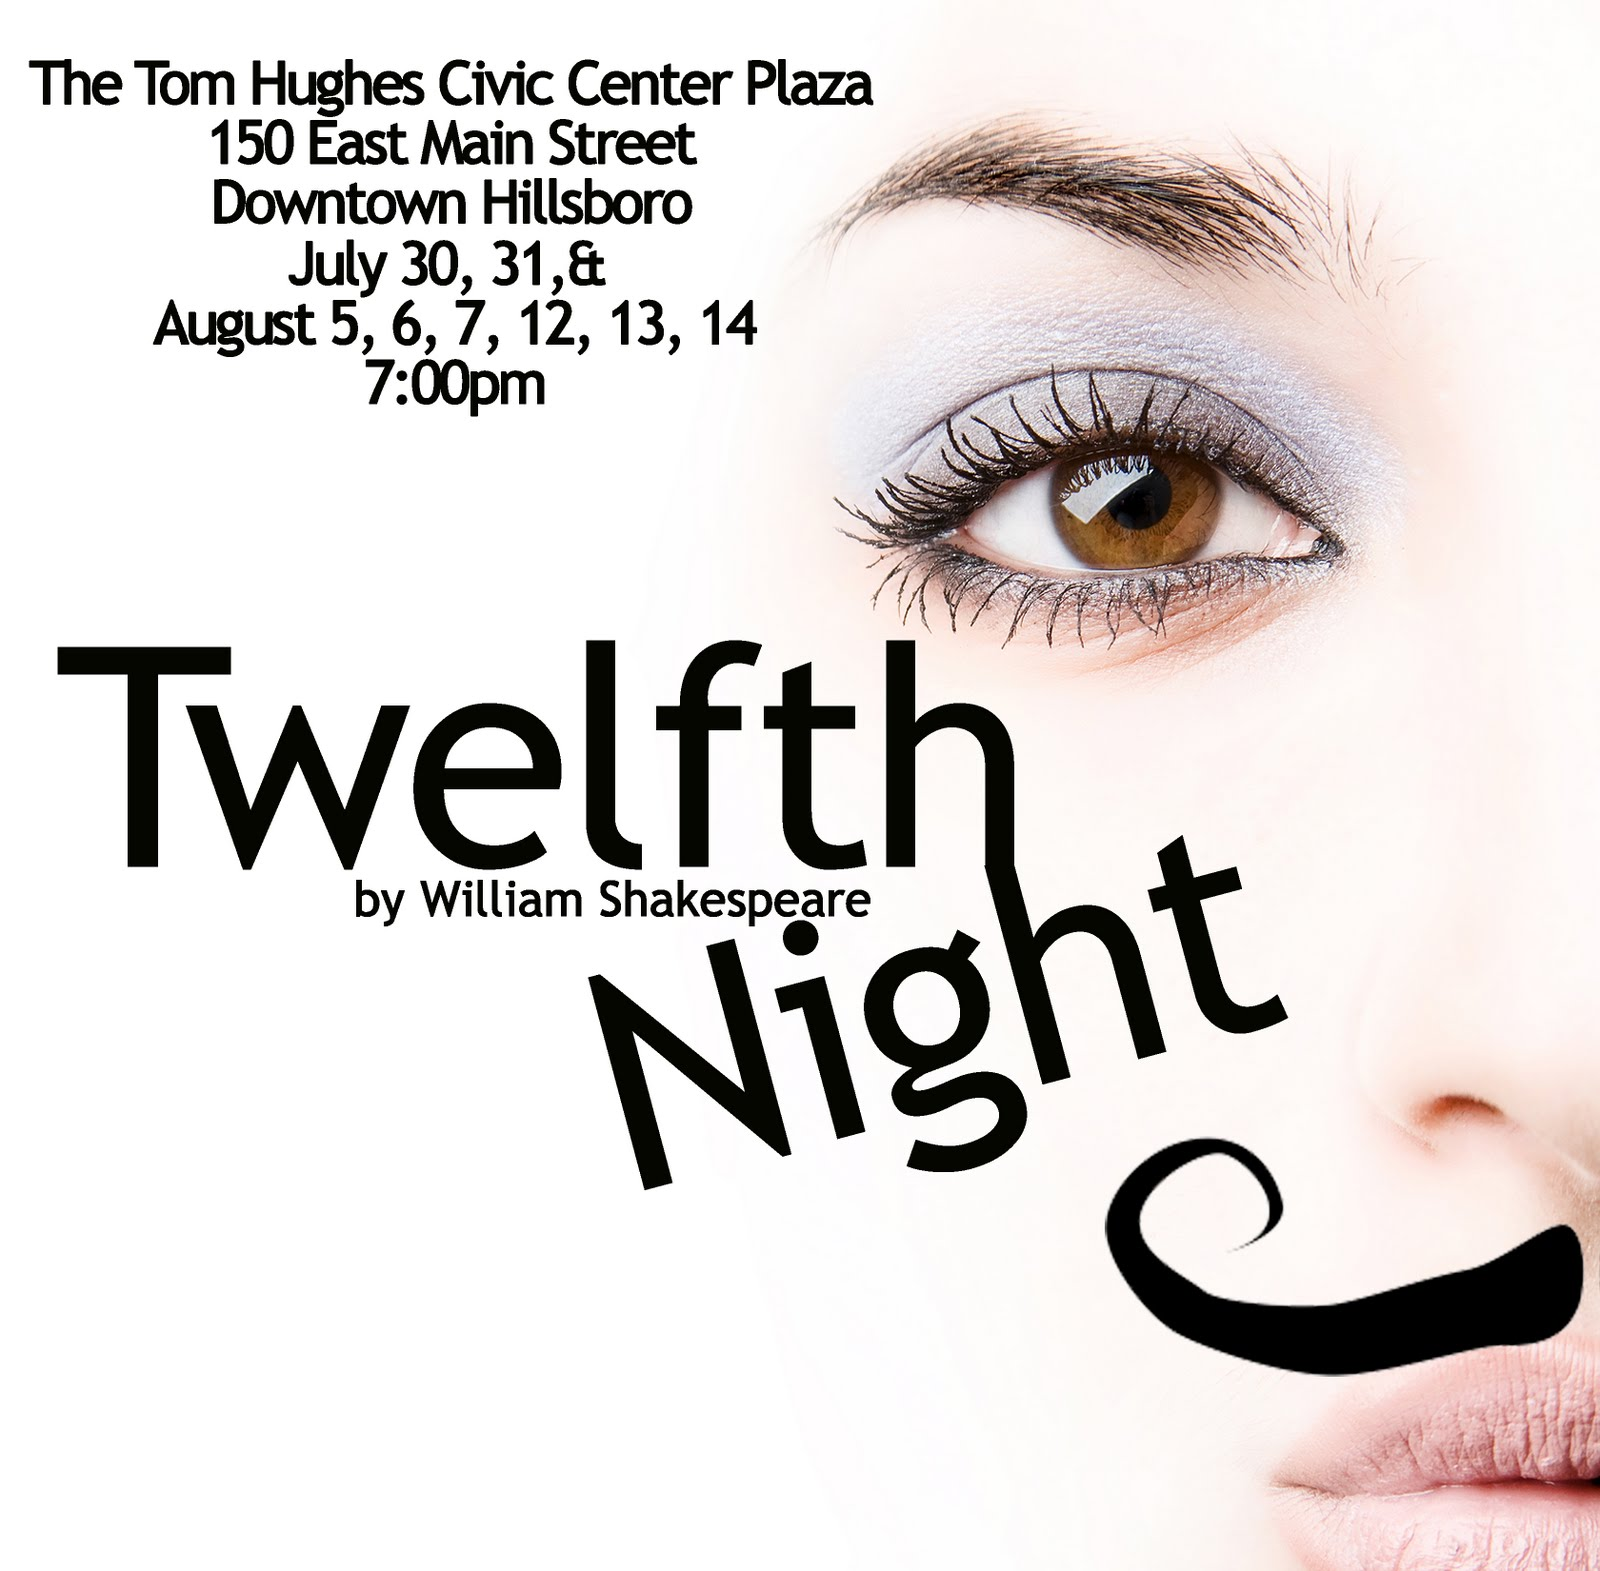 twelfth night relationships essay Love and relationships rule in illyria, and are the focus of each of the characters in twelfth night there are four types of love in twelfth night: romantic love, friendly love, brotherly love, and self love.